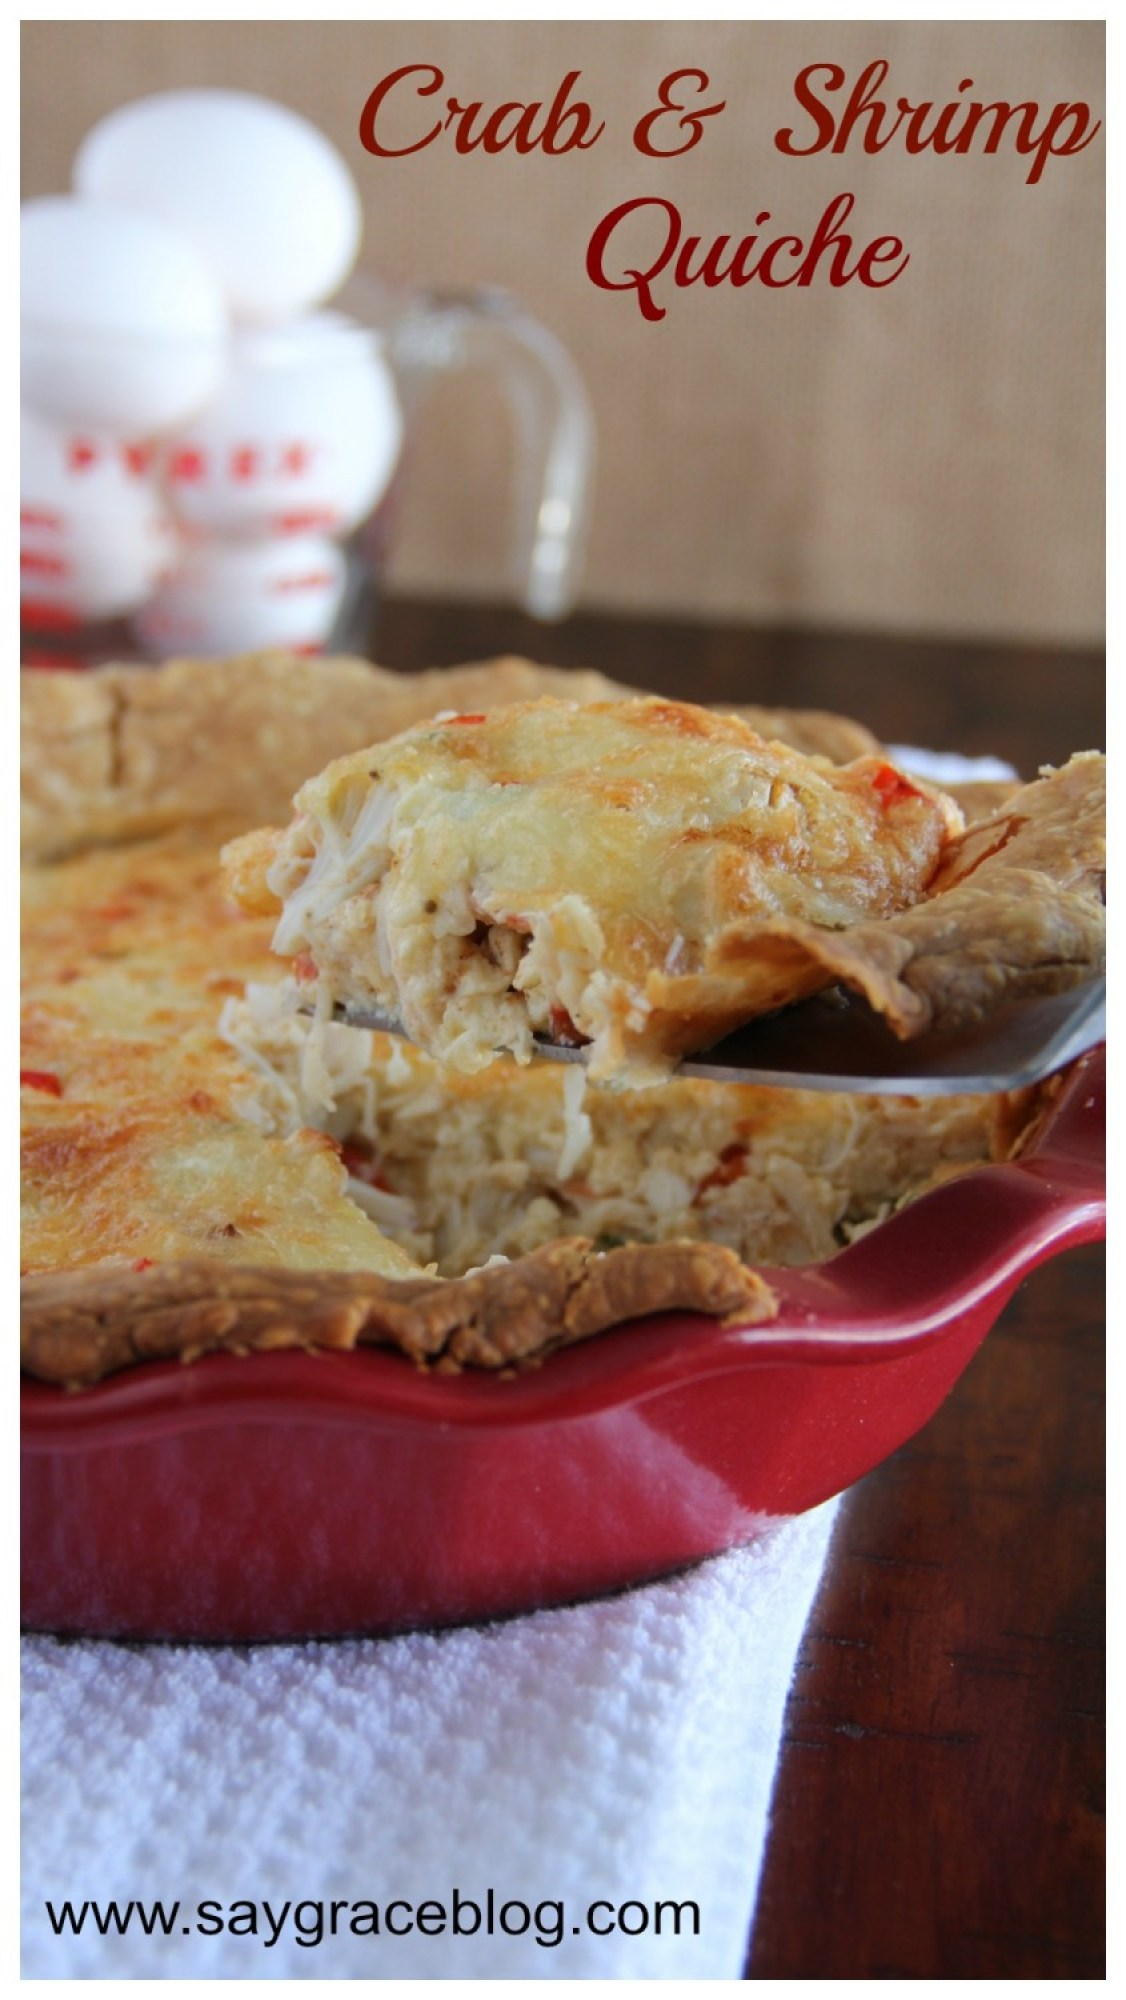 Crab & Shrimp Quiche